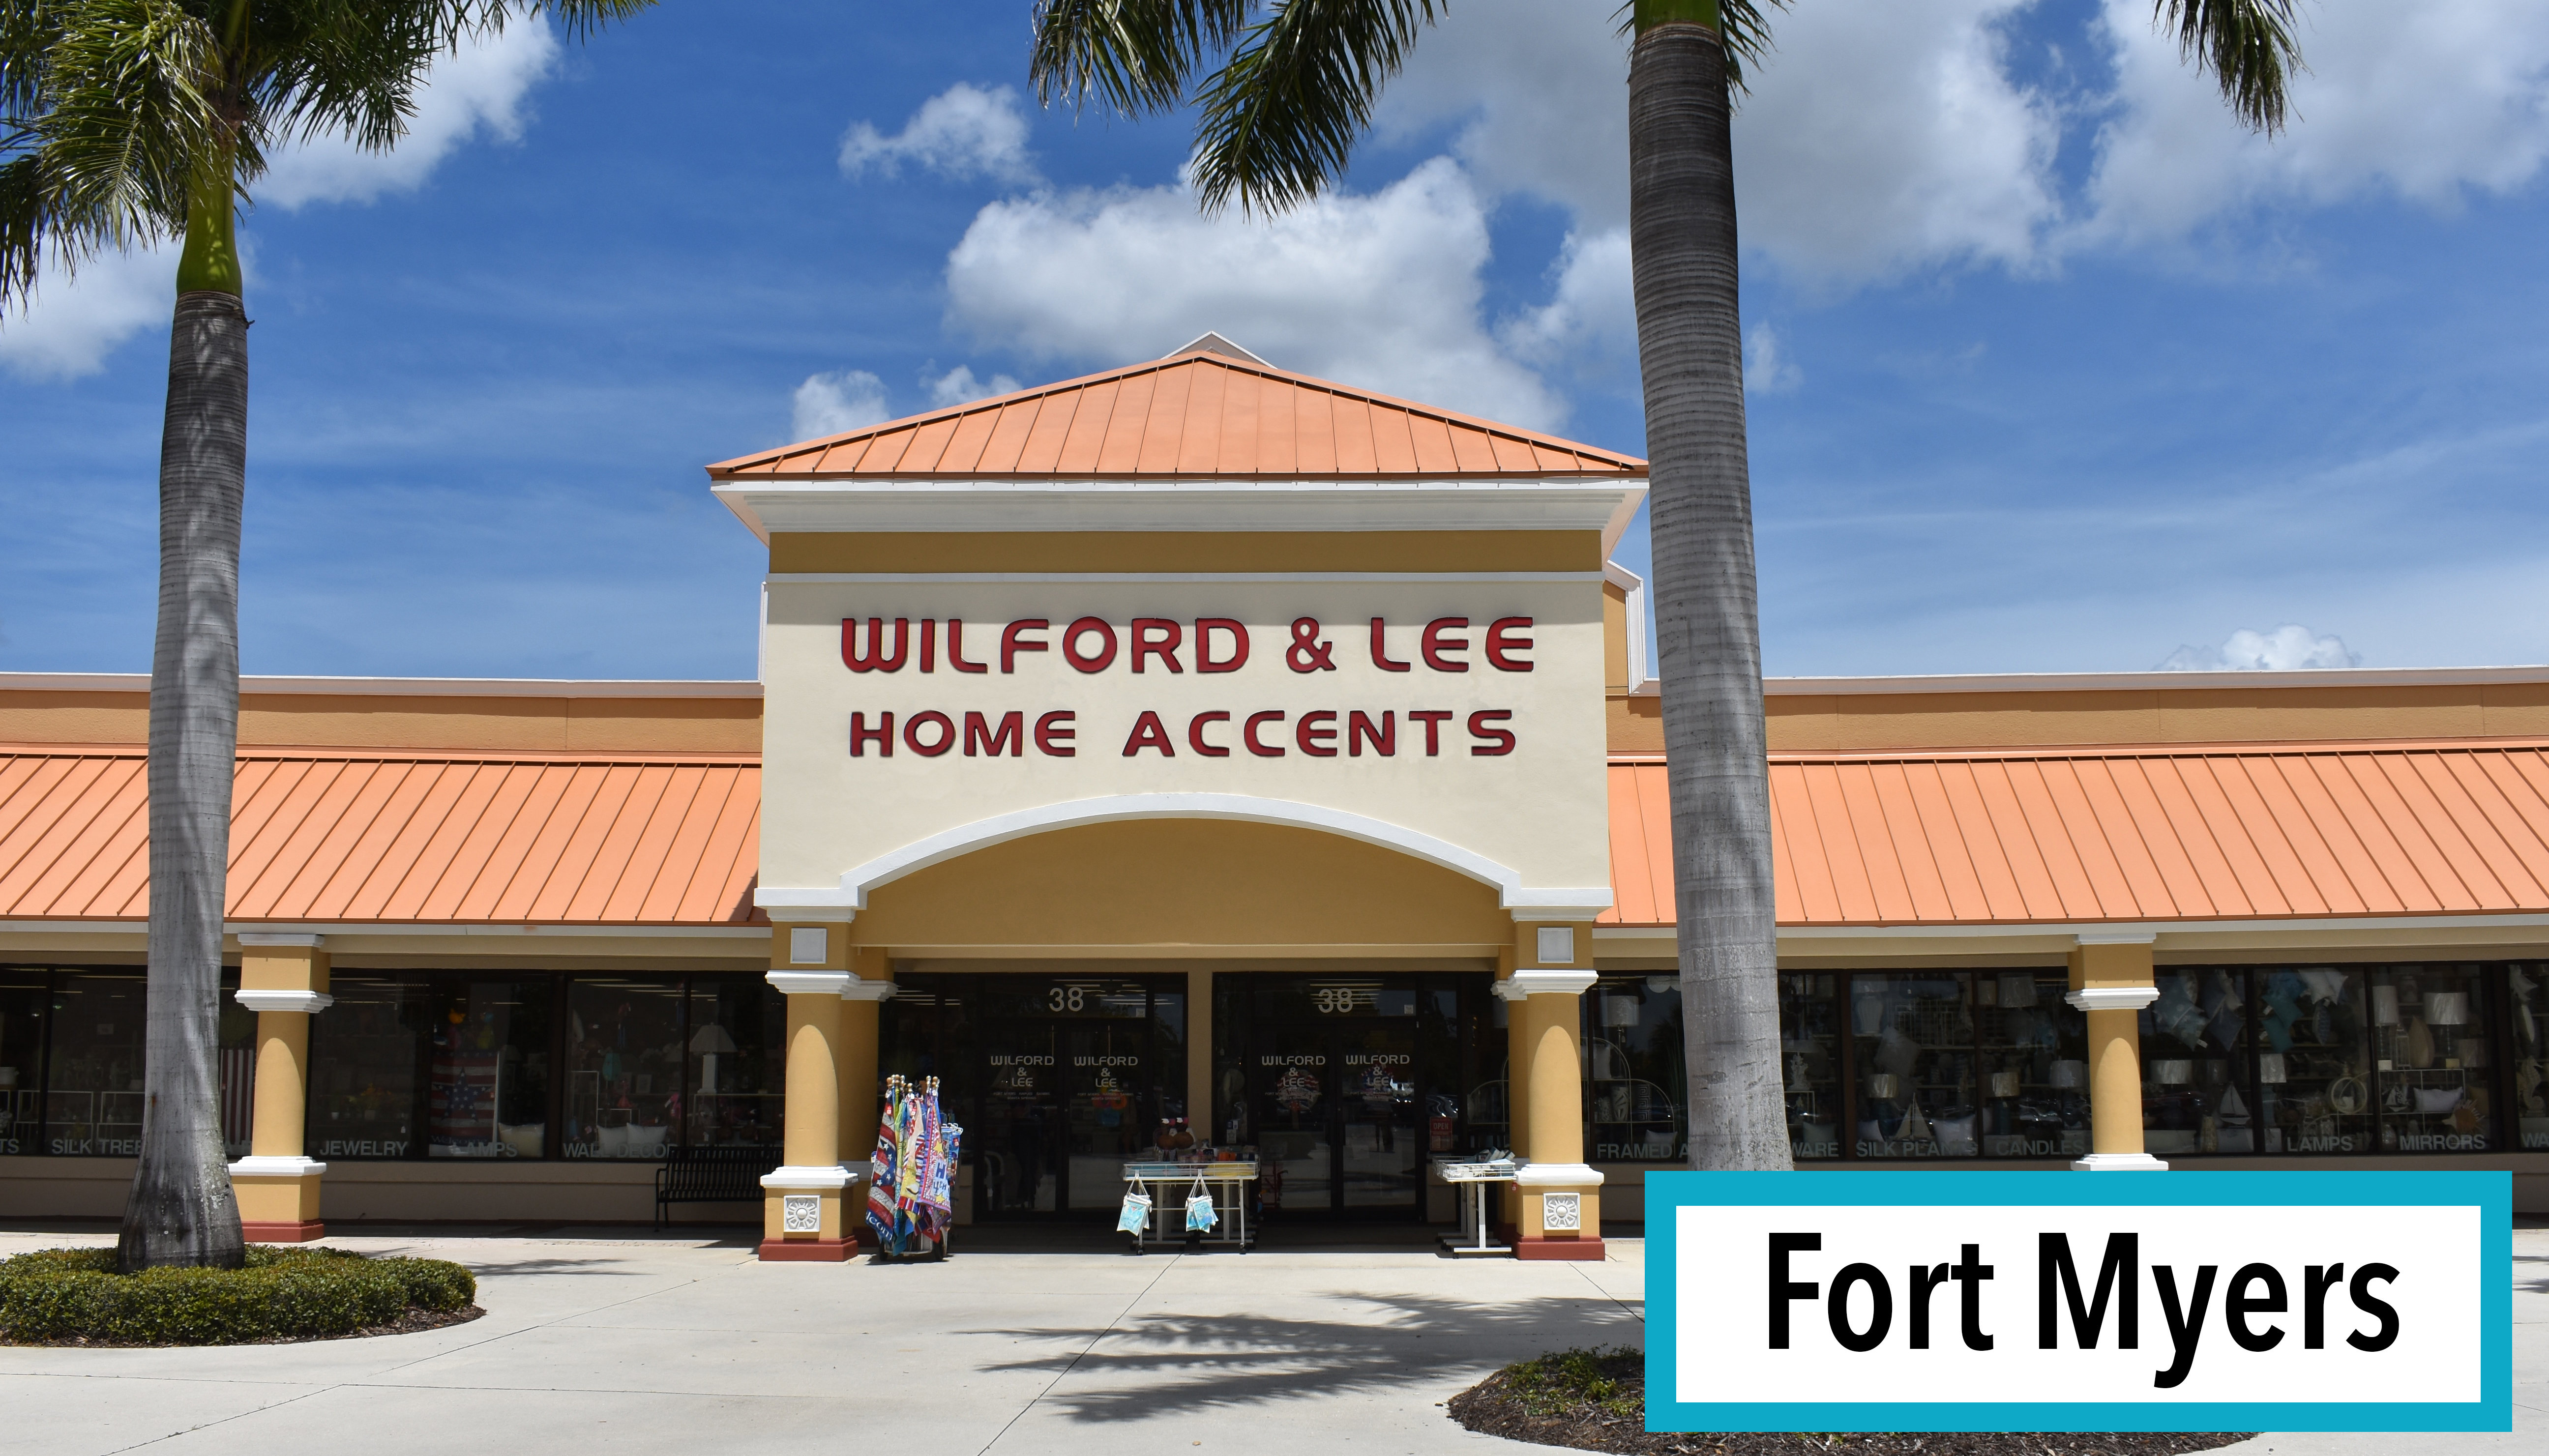 Wilford Lee Home Accents